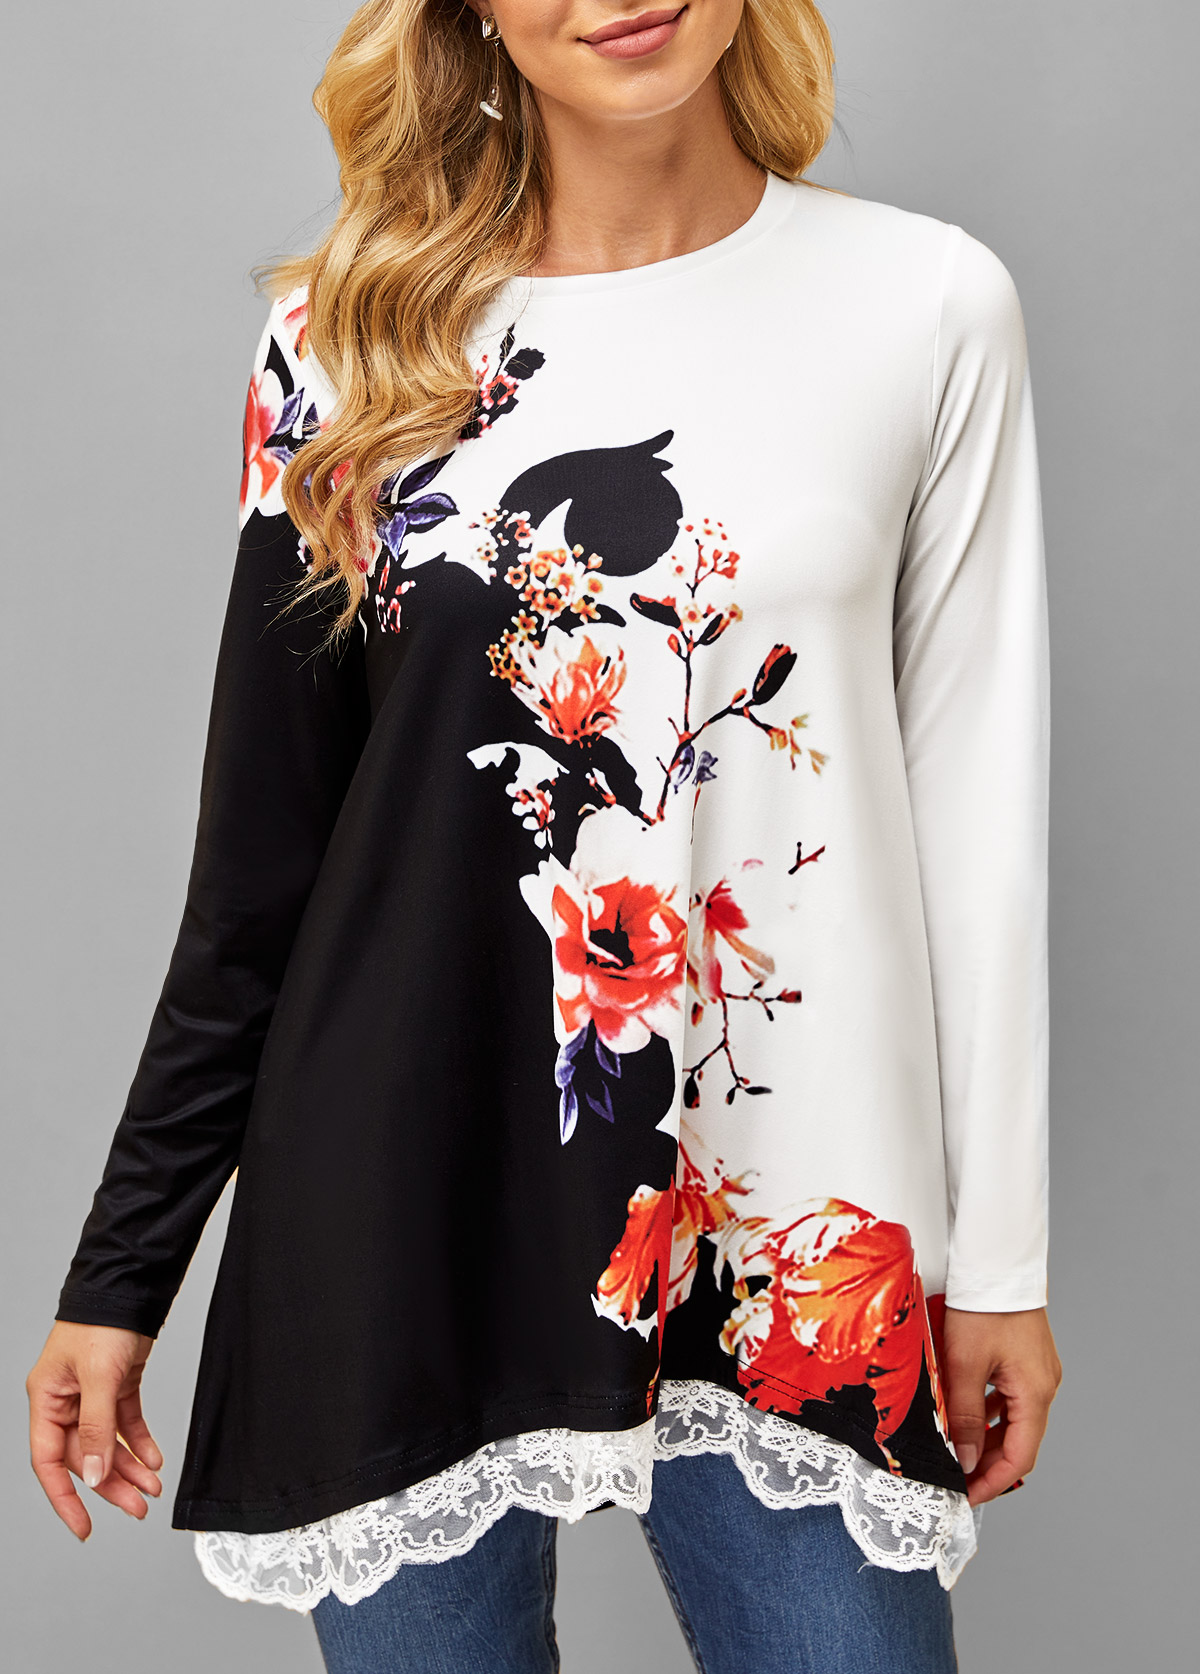 Lace Stitching Floral Print Long Sleeve T Shirt